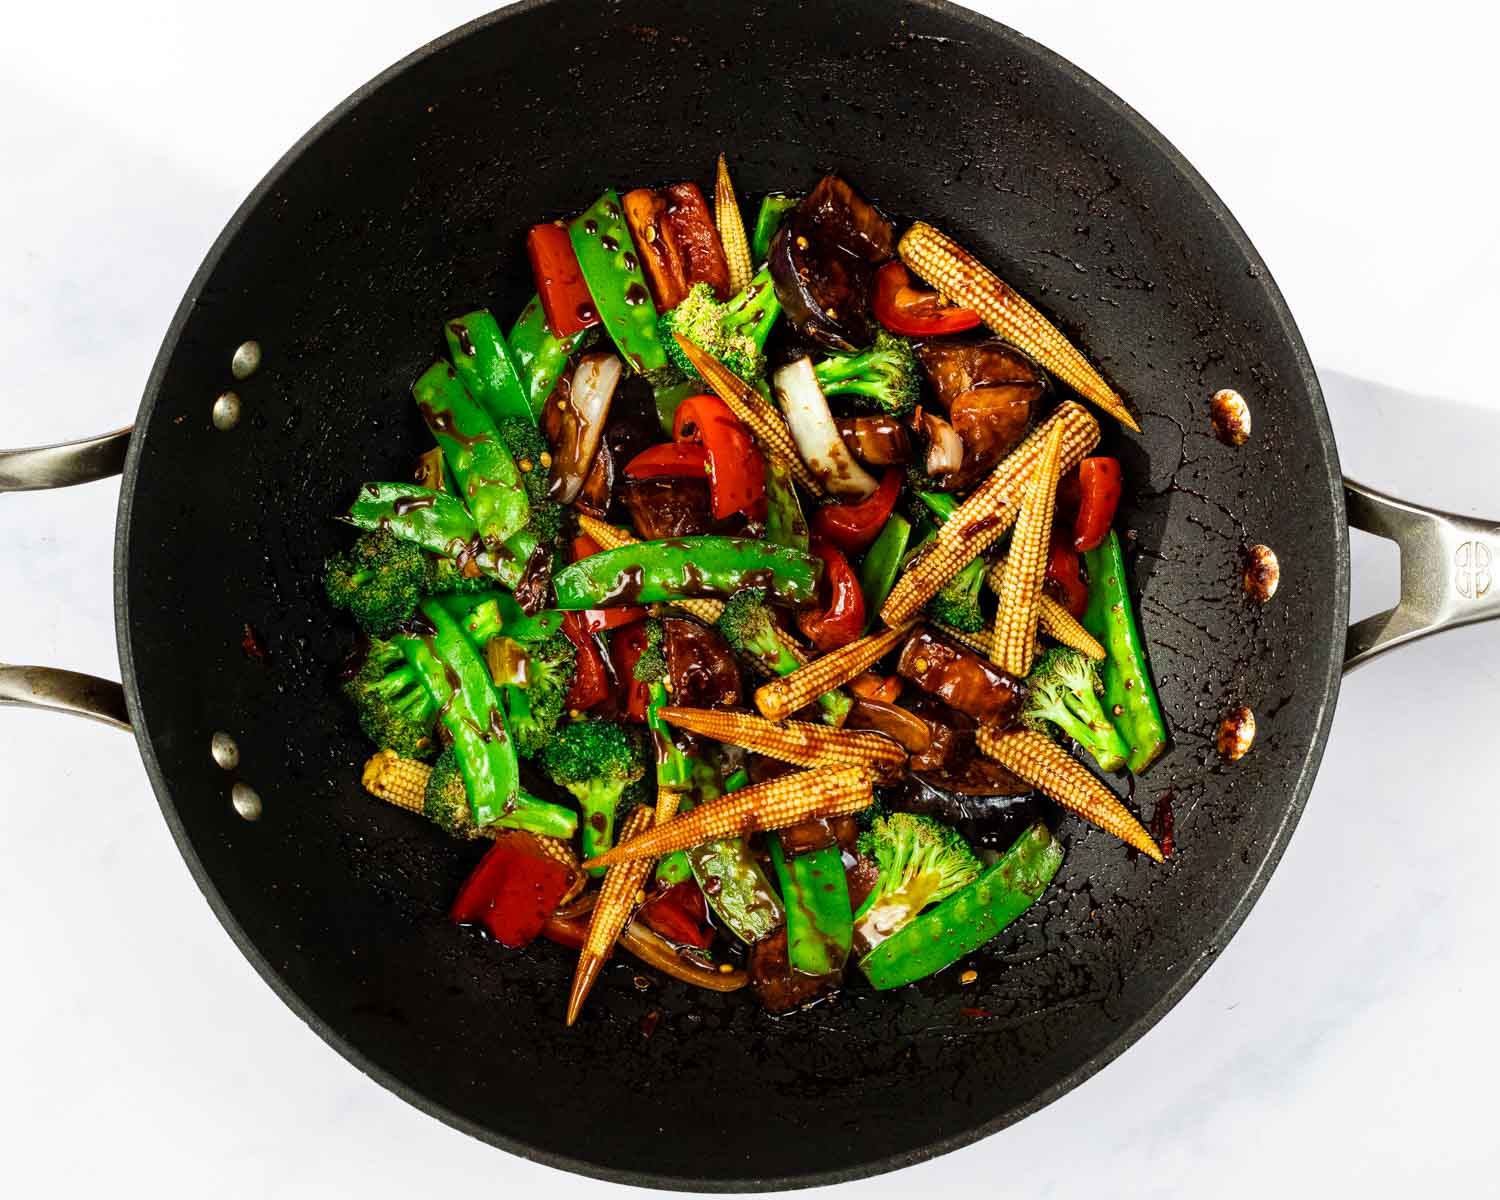 Kung Pao vegetables in a wok.